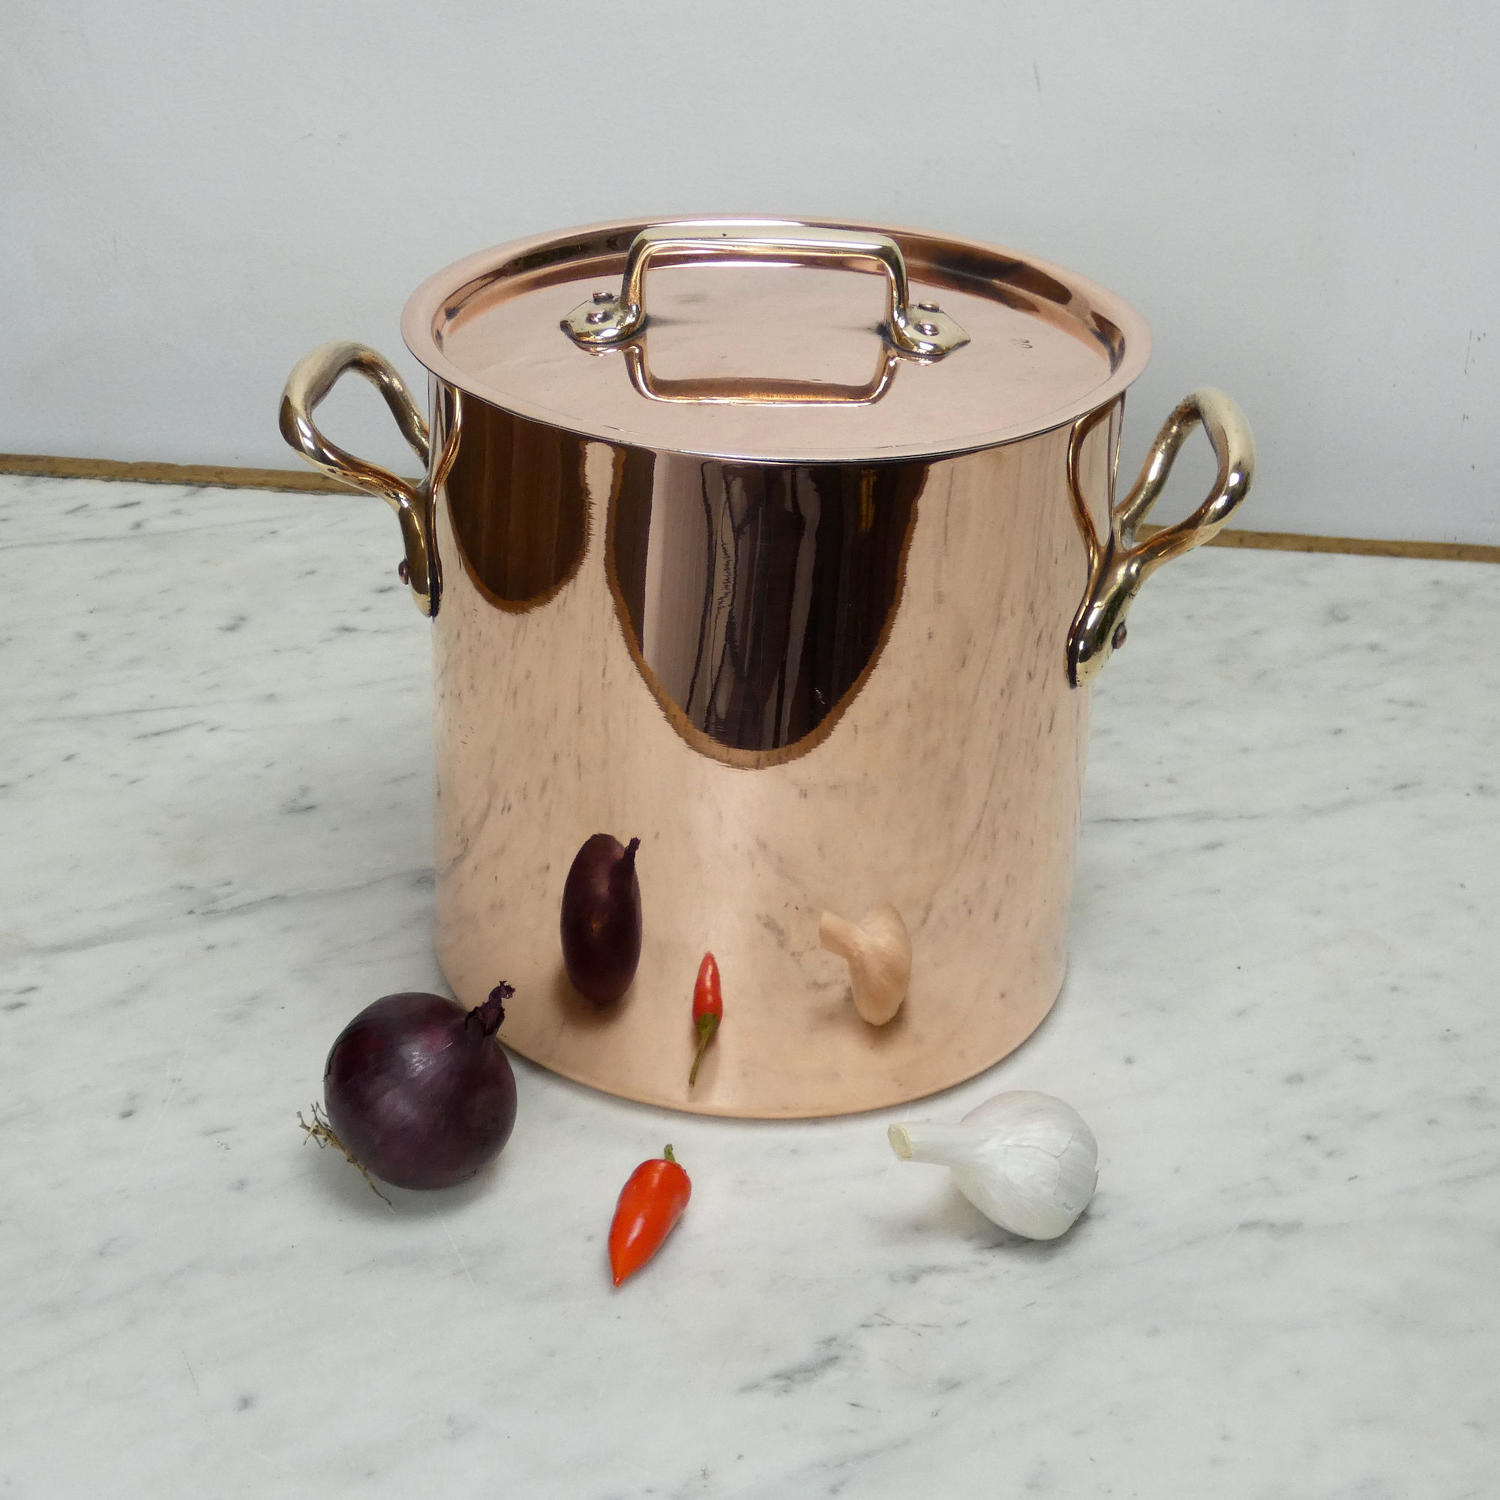 Small, French stockpot